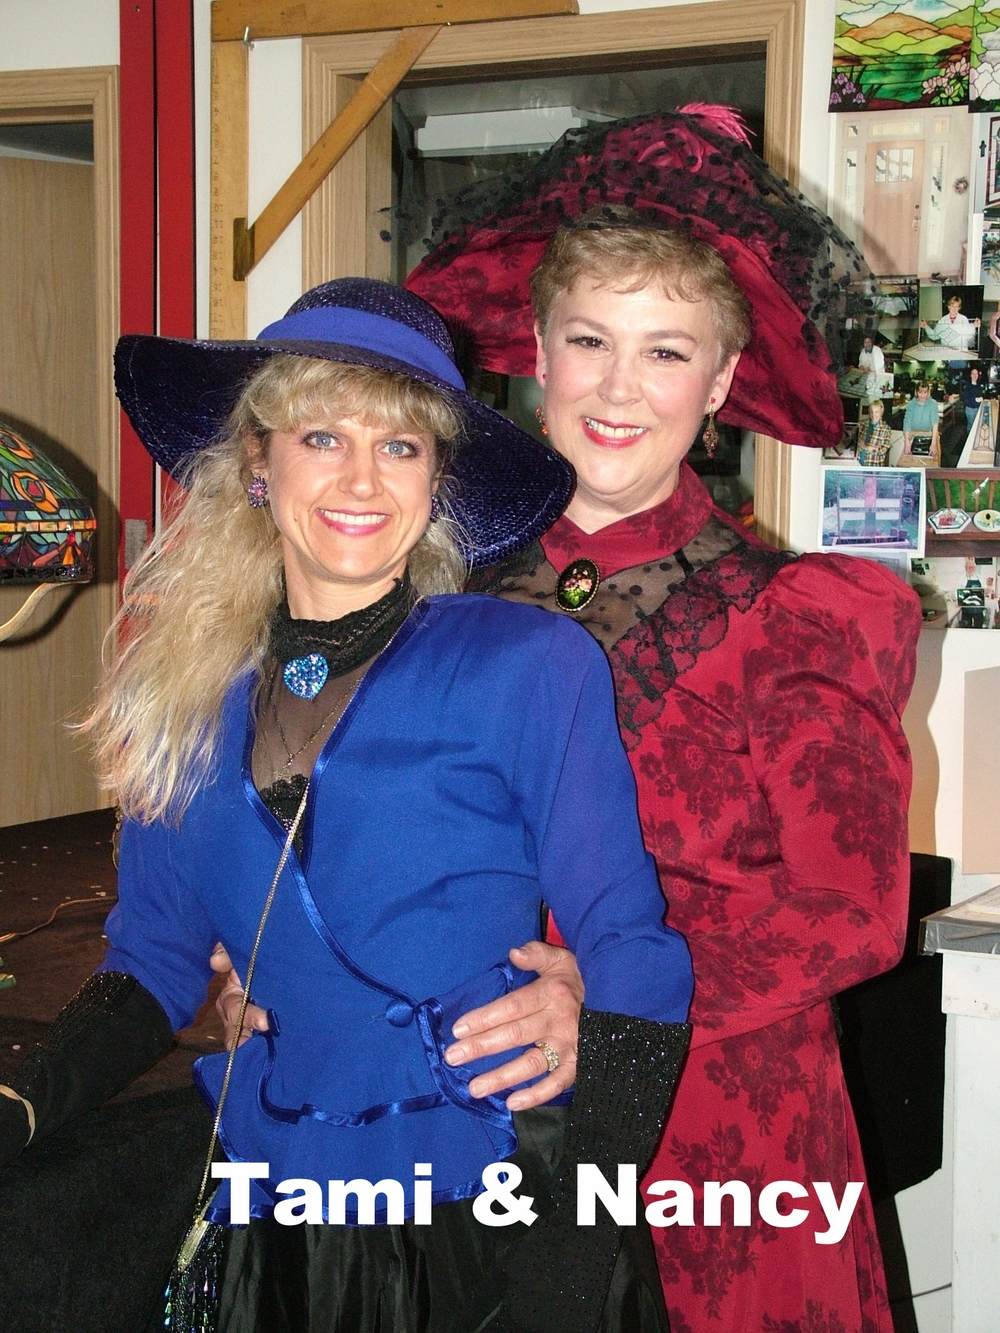 Tami & Nancy.JPG